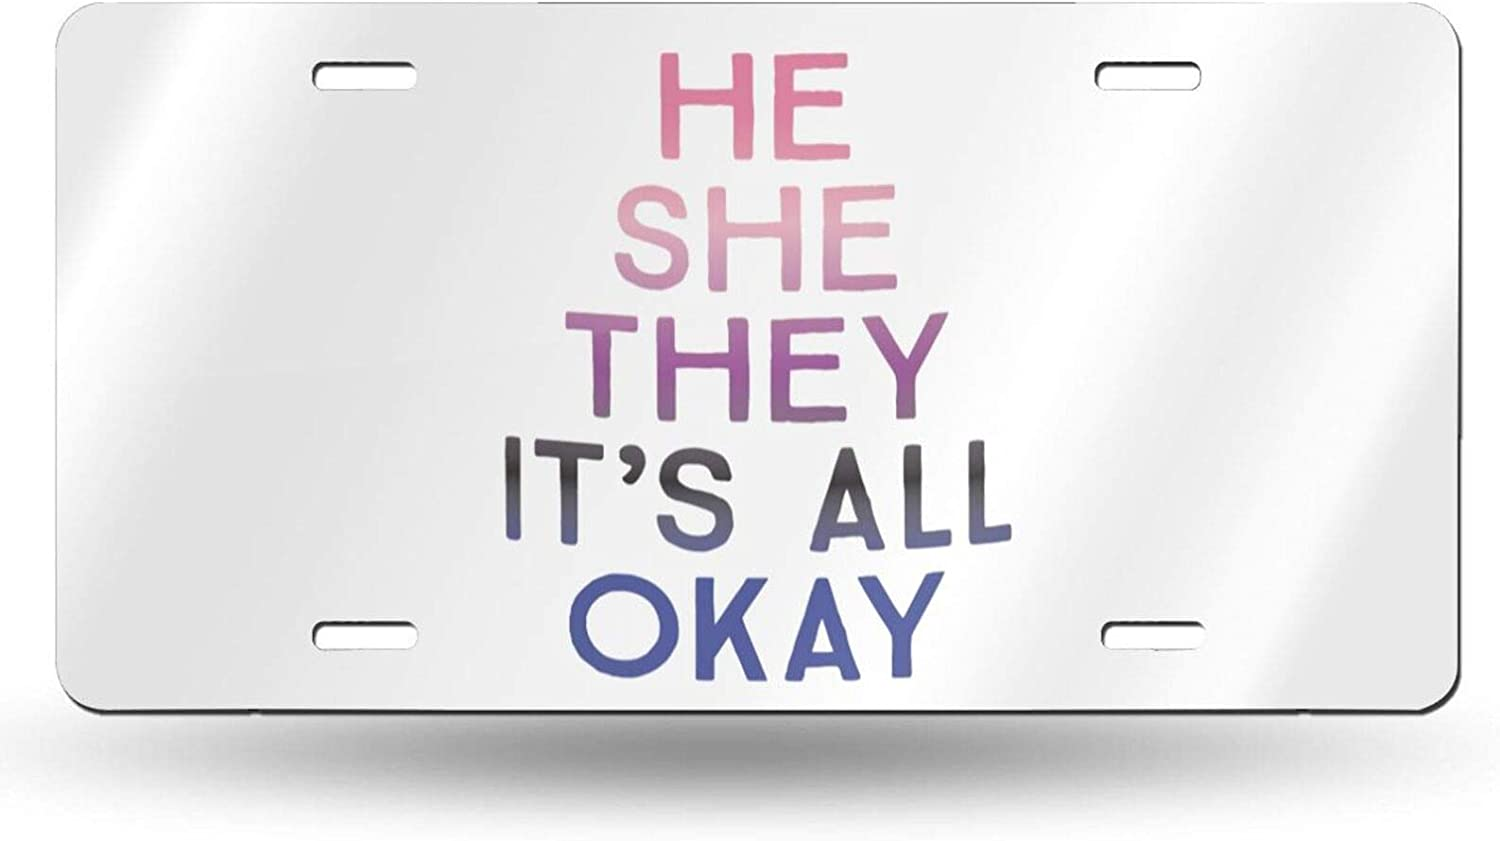 Amazon Com Filican He She They It S All Okay Novelty License Plate Cover Vanity Metal Tag For Front Of Car 6 X 12 Inch Sports Outdoors What data will you learn from our reports? amazon com